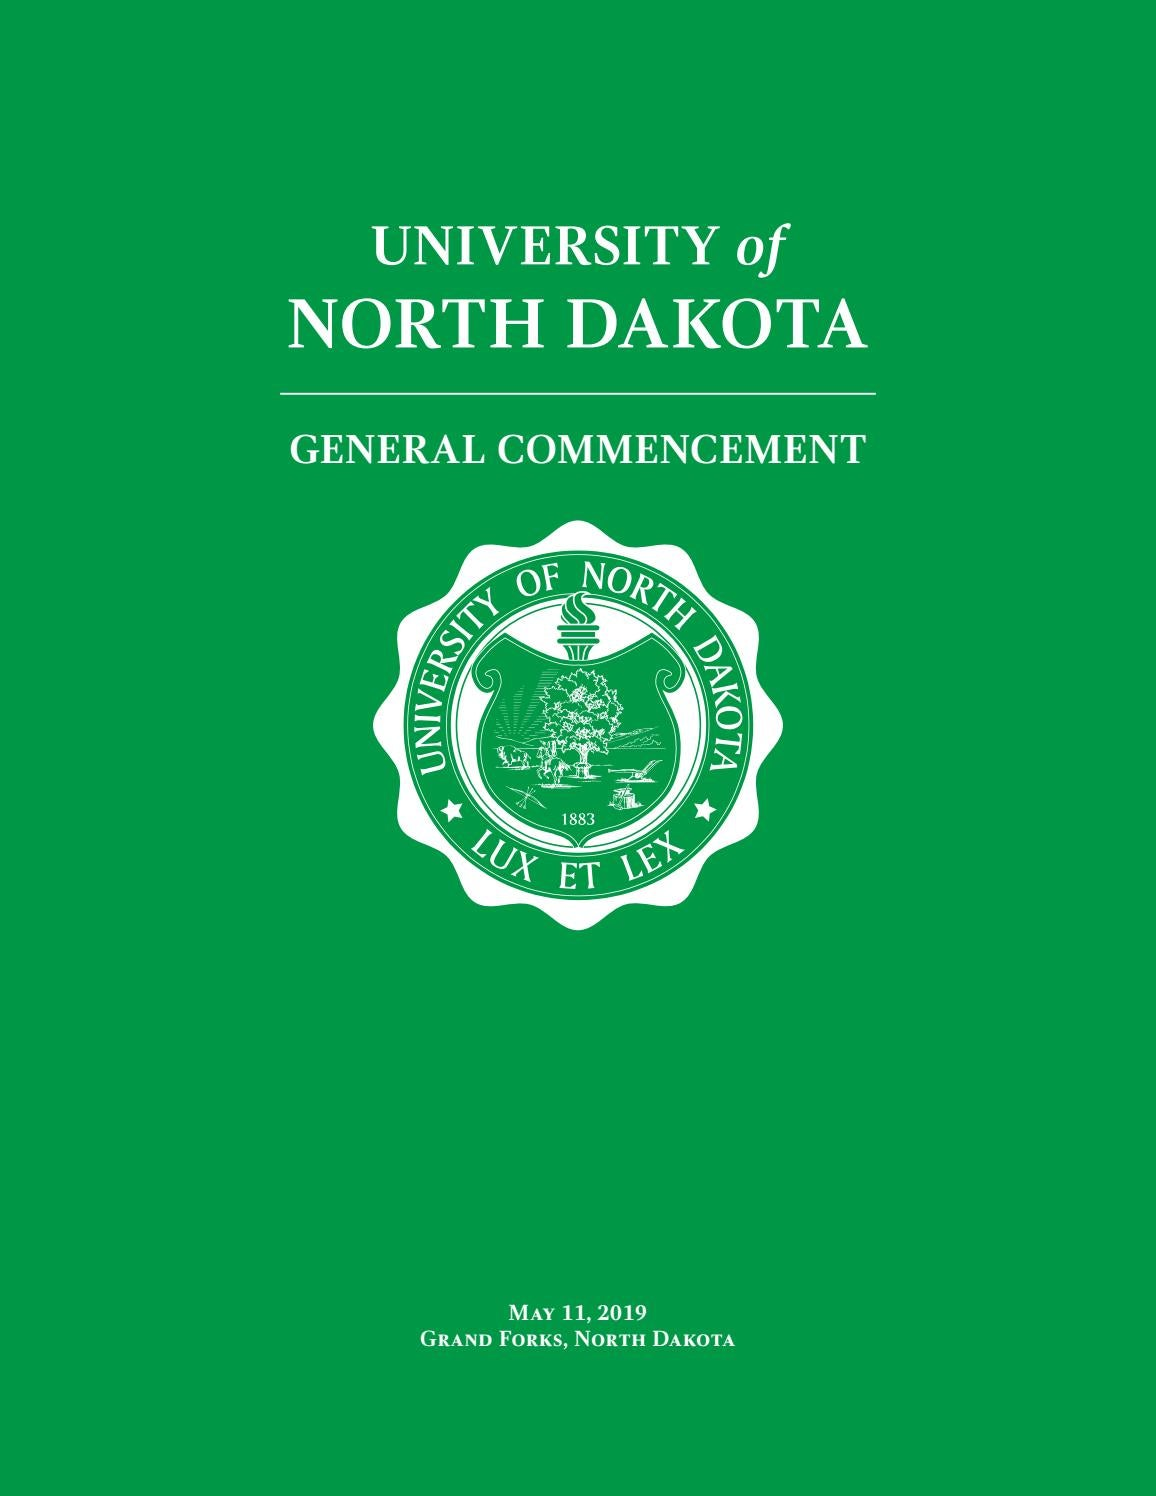 2019 university of north dakota spring commencement by university of north dakota issuu 2019 university of north dakota spring